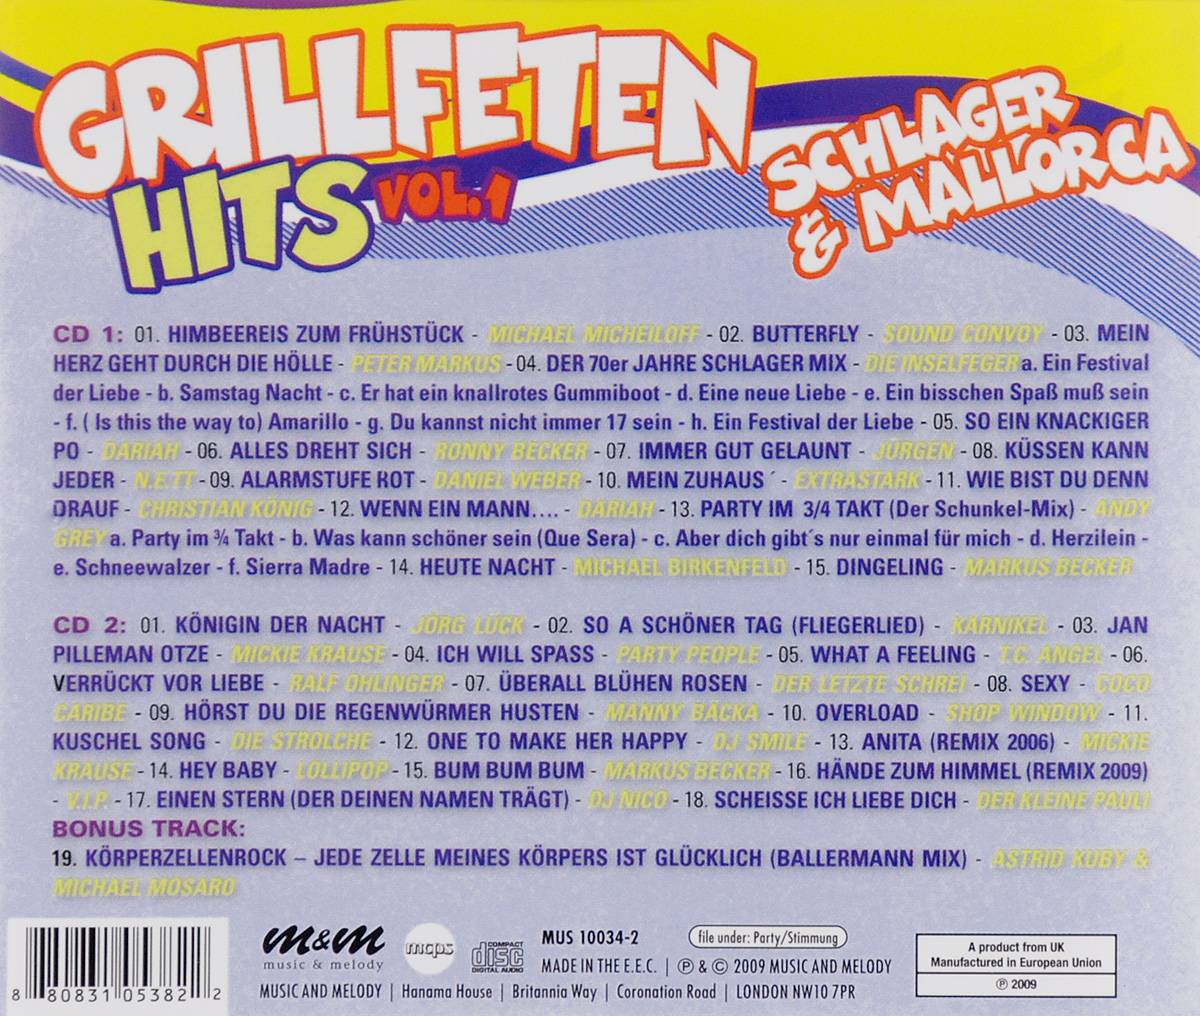 Grillfeten Hits. Vol. 1 (2 CD)